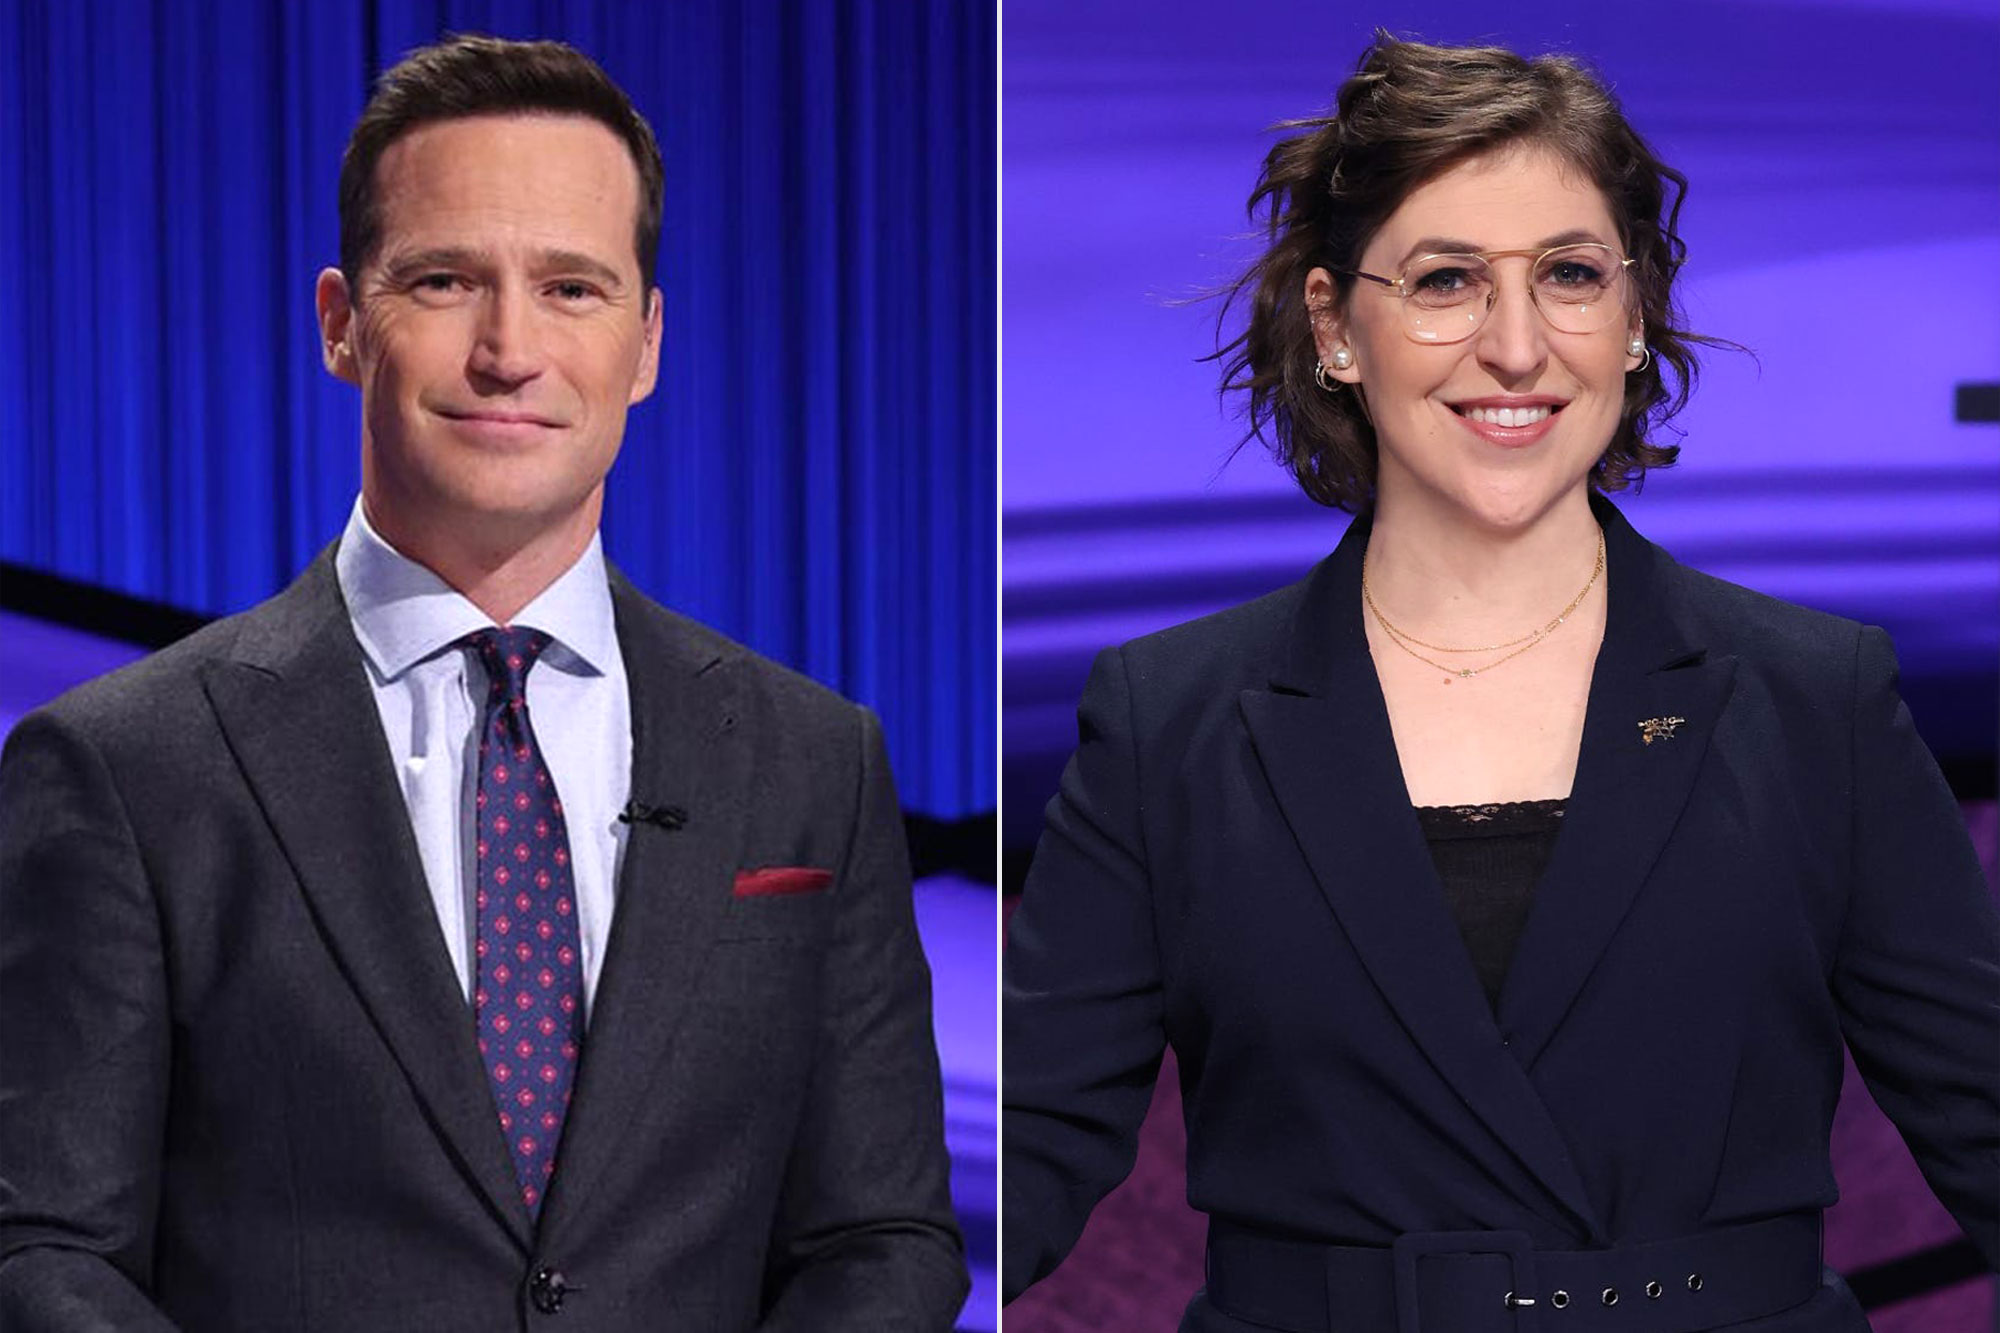 Mike Richards and Mayim Bialik new cohosts of Jeopardy